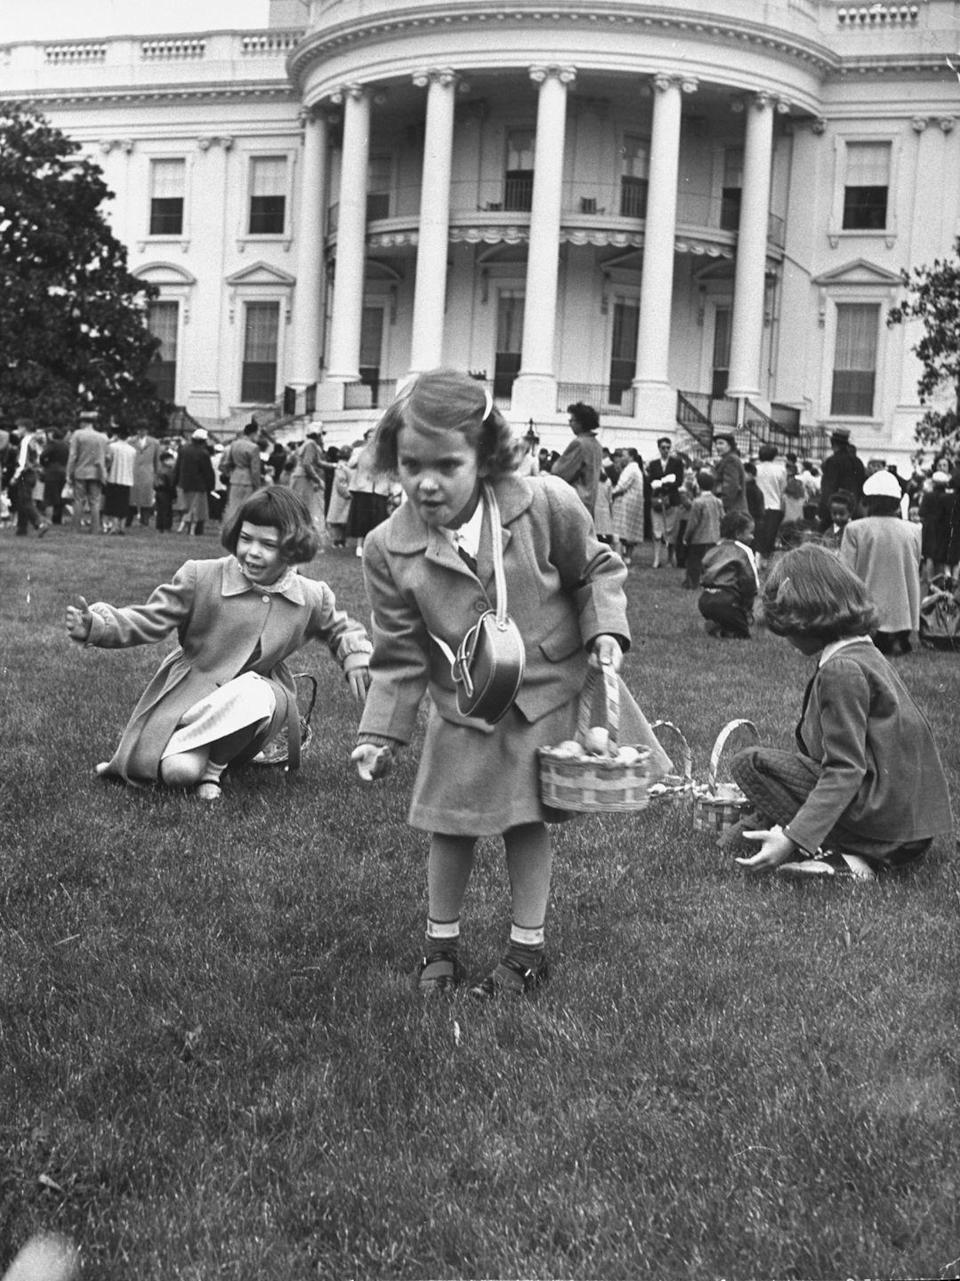 """<p>The tradition of the White House Easter Egg roll dates back to 1878, when President <a href=""""https://www.goodhousekeeping.com/life/g5126/president-facts/?slide=19"""" rel=""""nofollow noopener"""" target=""""_blank"""" data-ylk=""""slk:Rutherford B. Hayes"""" class=""""link rapid-noclick-resp"""">Rutherford B. Hayes</a> opened the White House lawn for the tradition after being approached by children on one of his daily walks. Previously, children had celebrated Easter by <a href=""""http://www.history.com/news/a-brief-history-of-the-white-house-easter-egg-roll"""" rel=""""nofollow noopener"""" target=""""_blank"""" data-ylk=""""slk:playing games on Capitol Hill"""" class=""""link rapid-noclick-resp"""">playing games on Capitol Hill</a>, but Ulysses S. Grant signed a bill banning the practice.</p><p>The <a href=""""https://whitehouse.gov1.info/easter-egg-roll/"""" rel=""""nofollow noopener"""" target=""""_blank"""" data-ylk=""""slk:White House Easter Egg Roll"""" class=""""link rapid-noclick-resp"""">White House Easter Egg Roll</a> is still a tradition today. Besides the Egg Roll, the celebration also features stations where children and their families can decorate cookies, dye eggs, and participate in an Easter Egg hunt. </p>"""